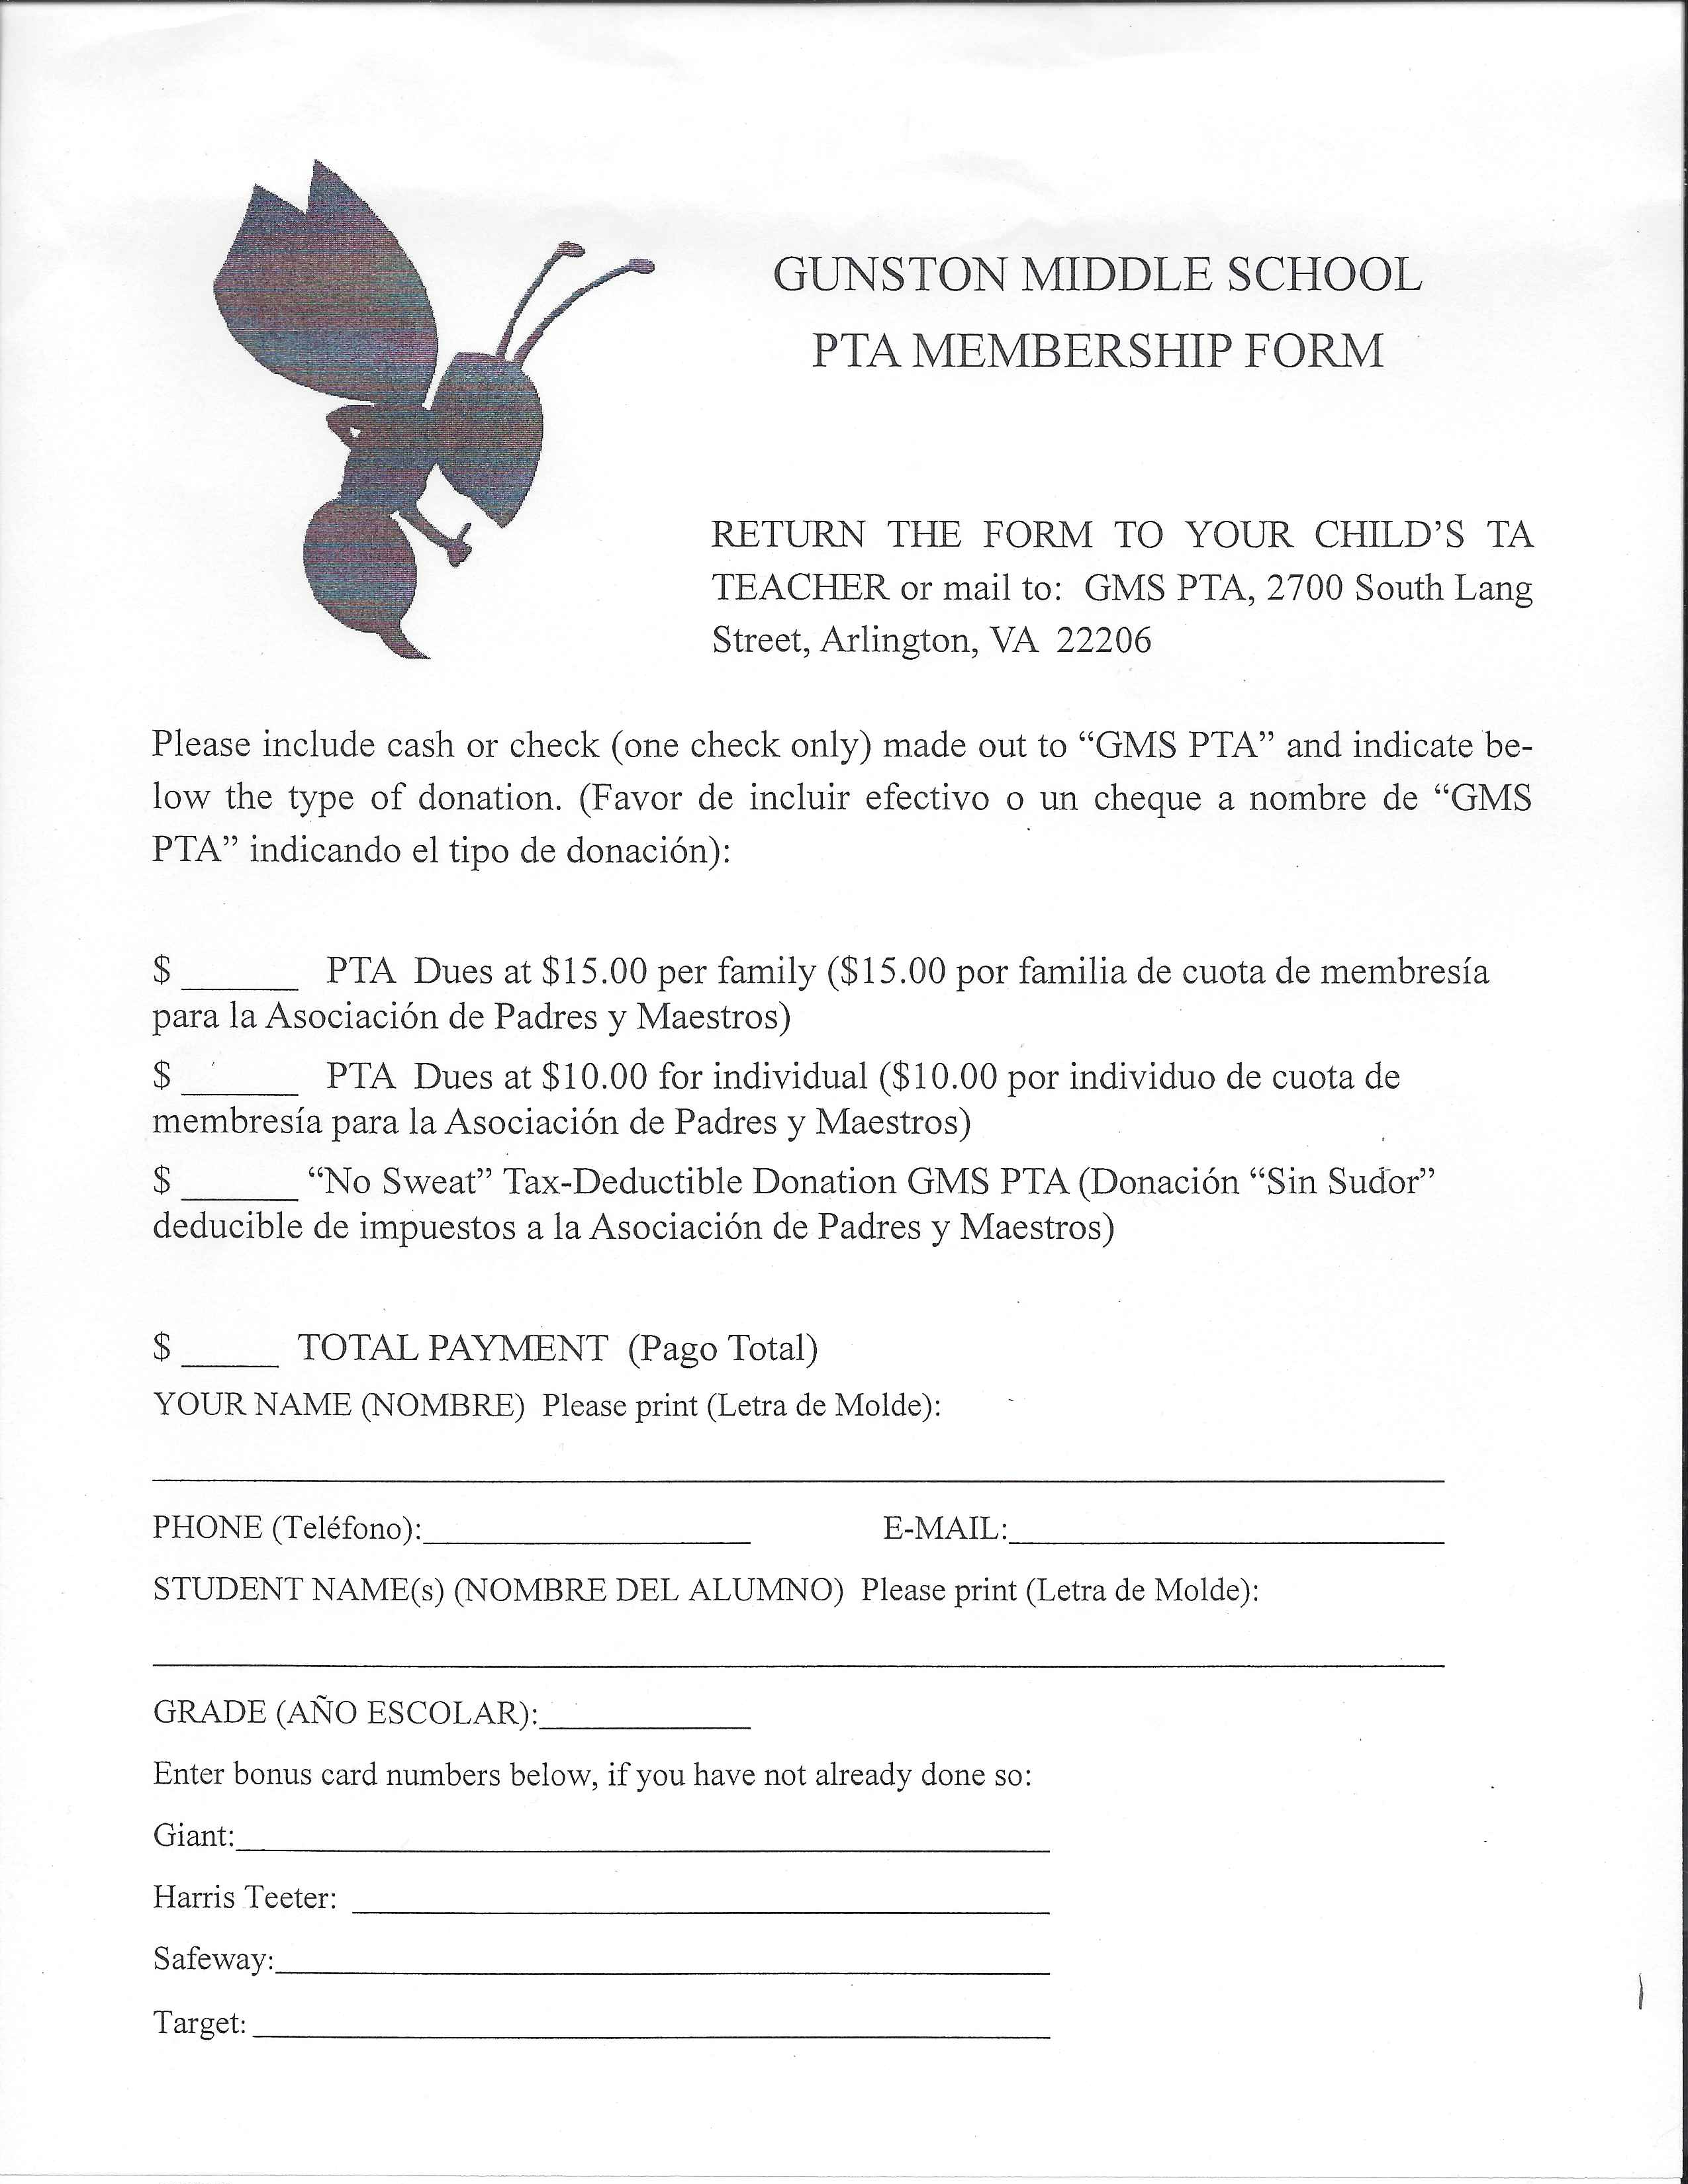 Welcome to the Gunston PTA / PTA Membership and Directory